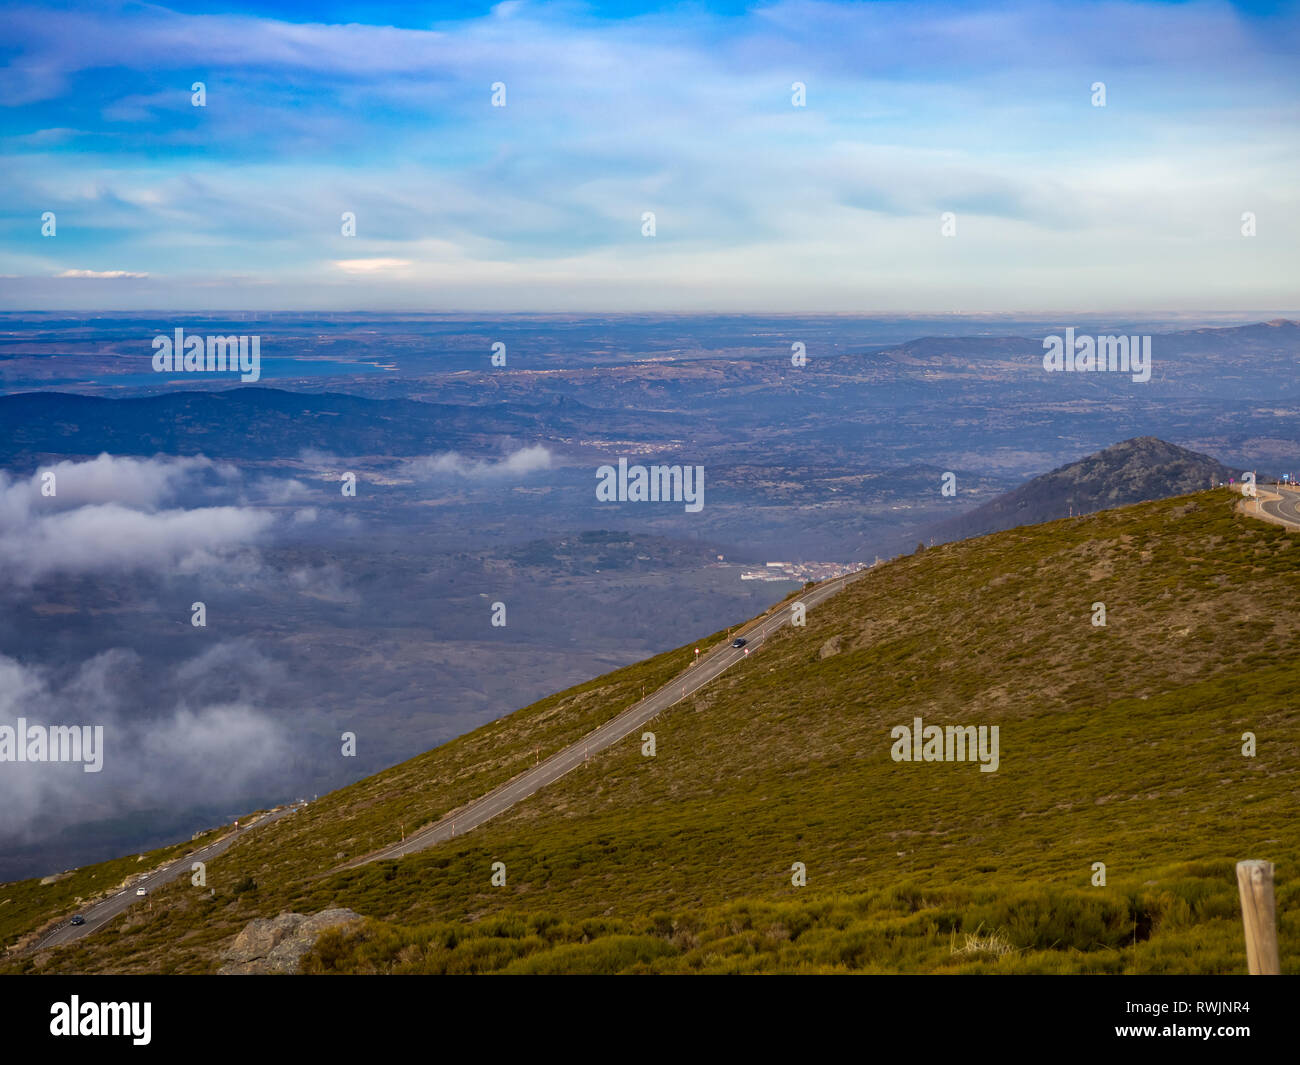 Aerial view of mountain landscape with a road and cloudy sky on a winter day on La Covatilla, Bejar (Salamanca) - Stock Image